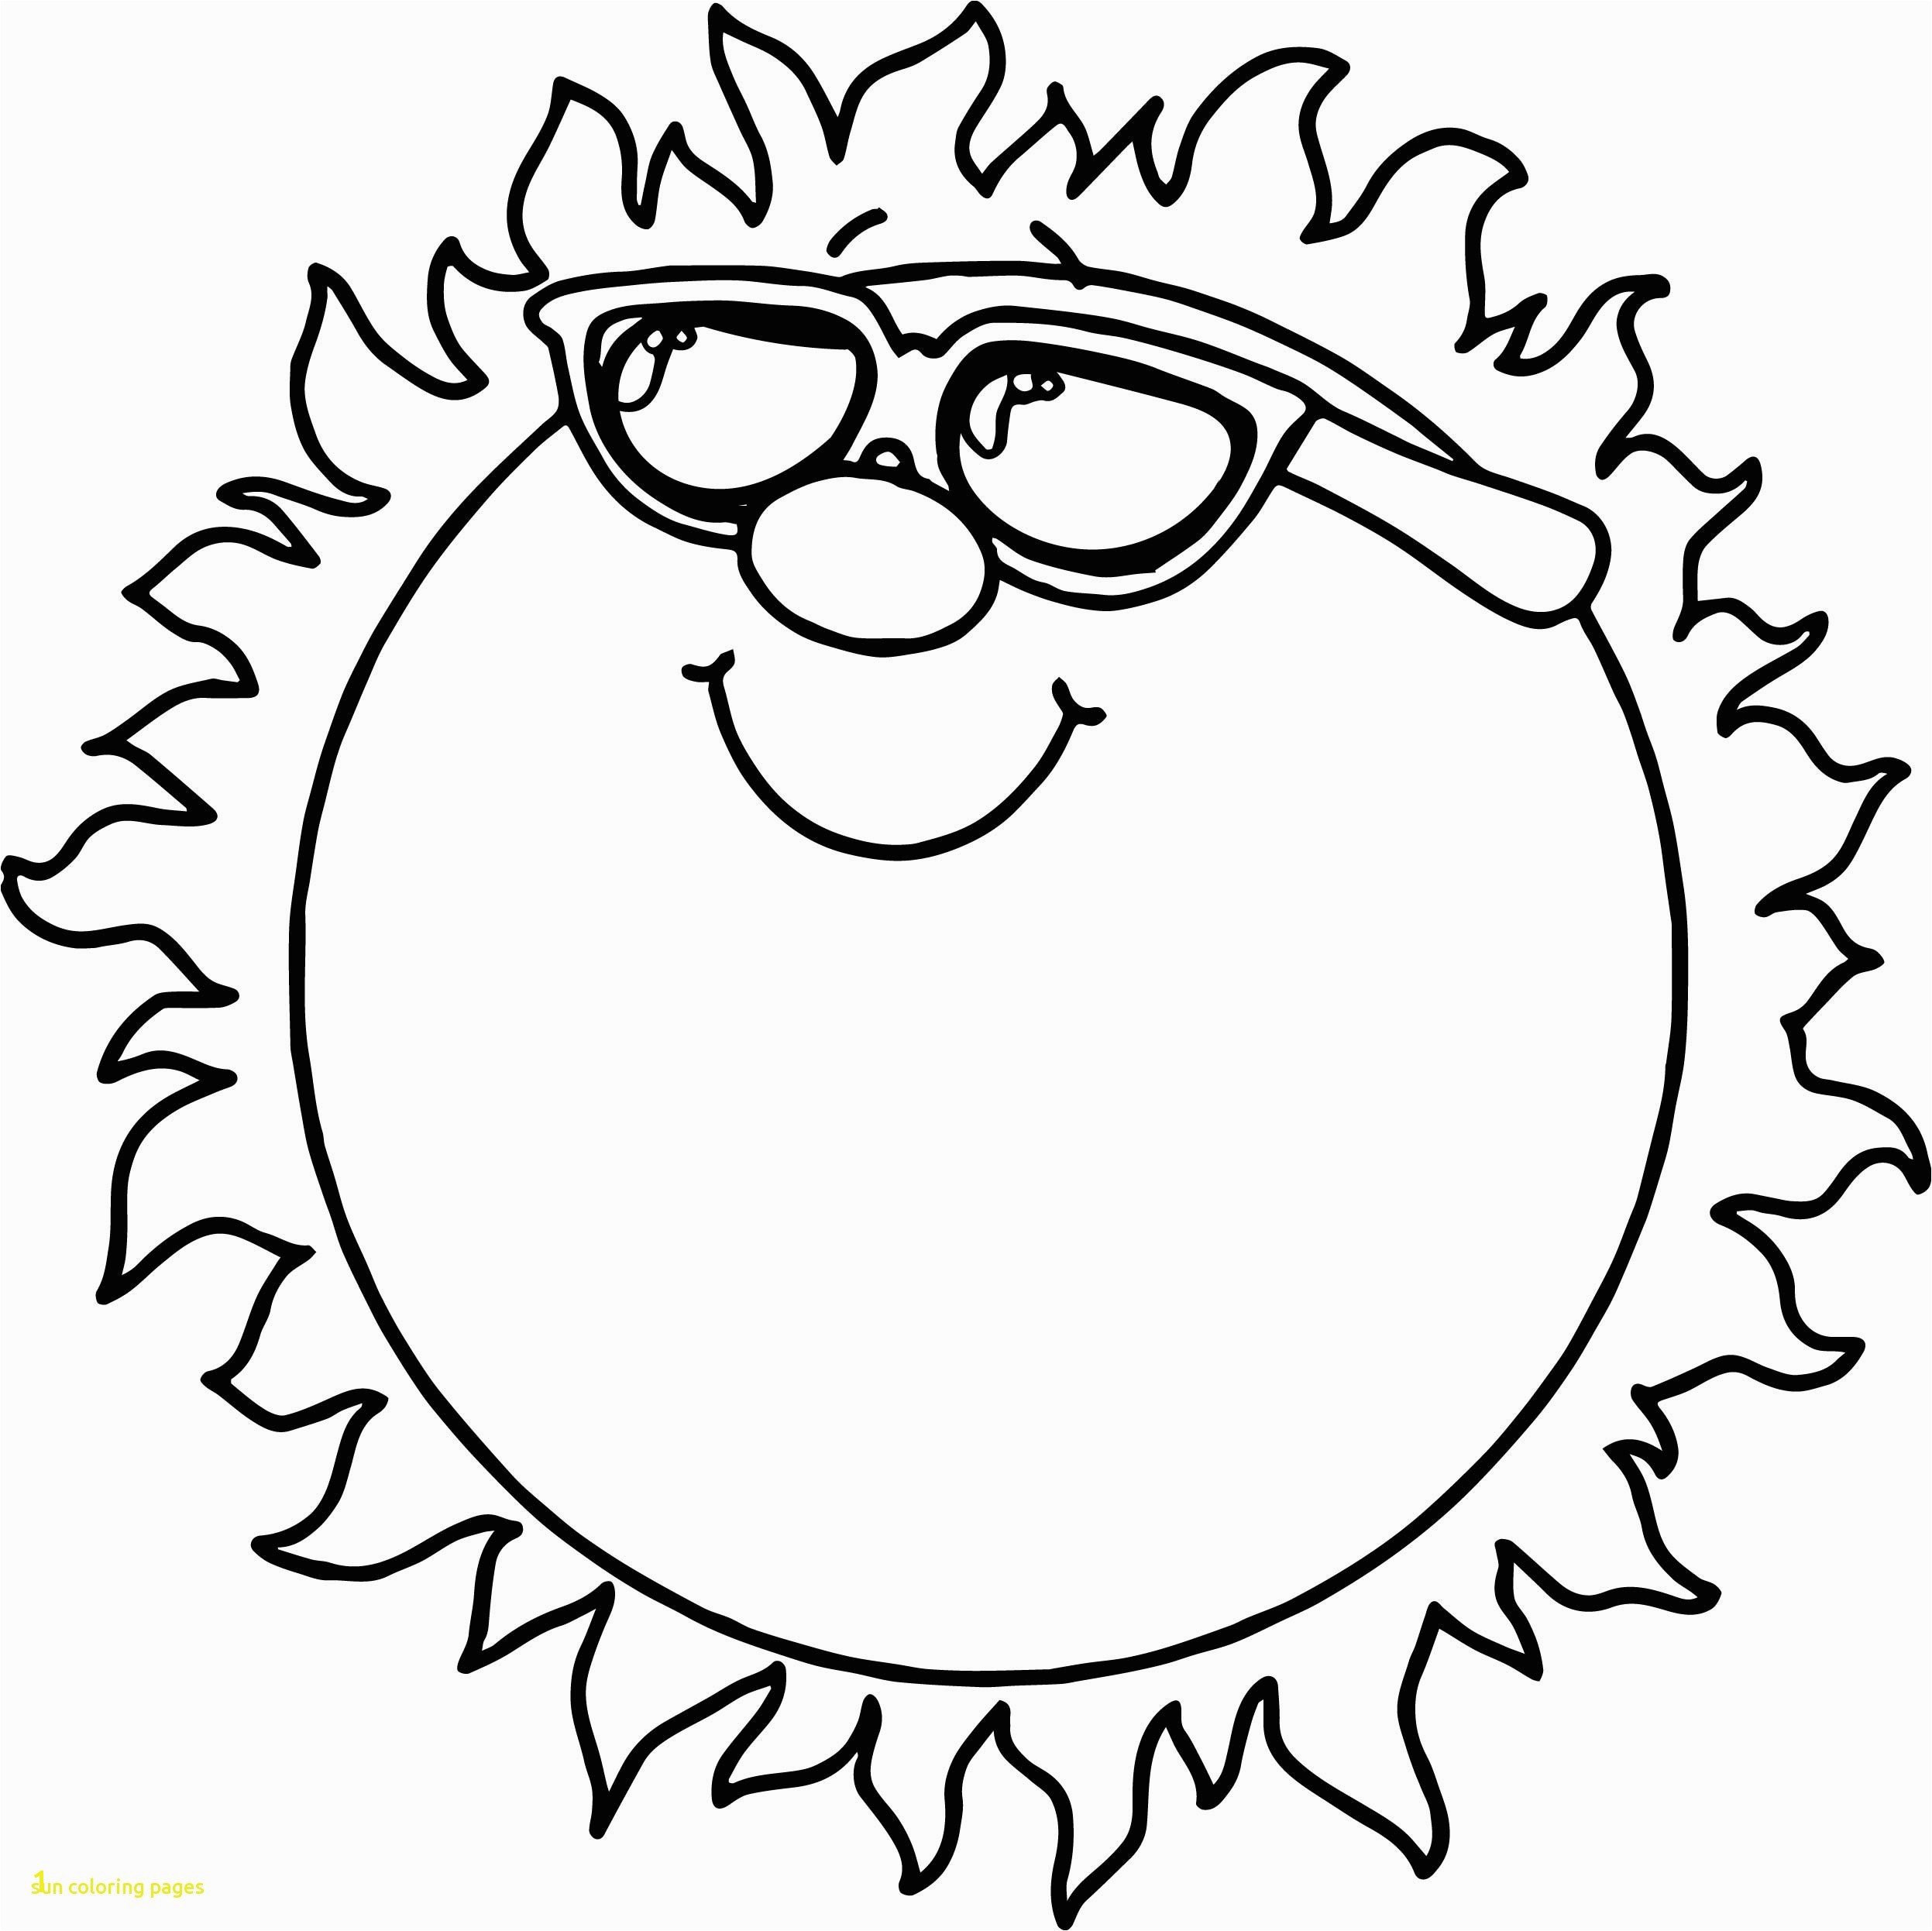 Drawing for Kids New Printable Sun Colouring 31 for Preschoolers 0d Coloring Drawing for Kids